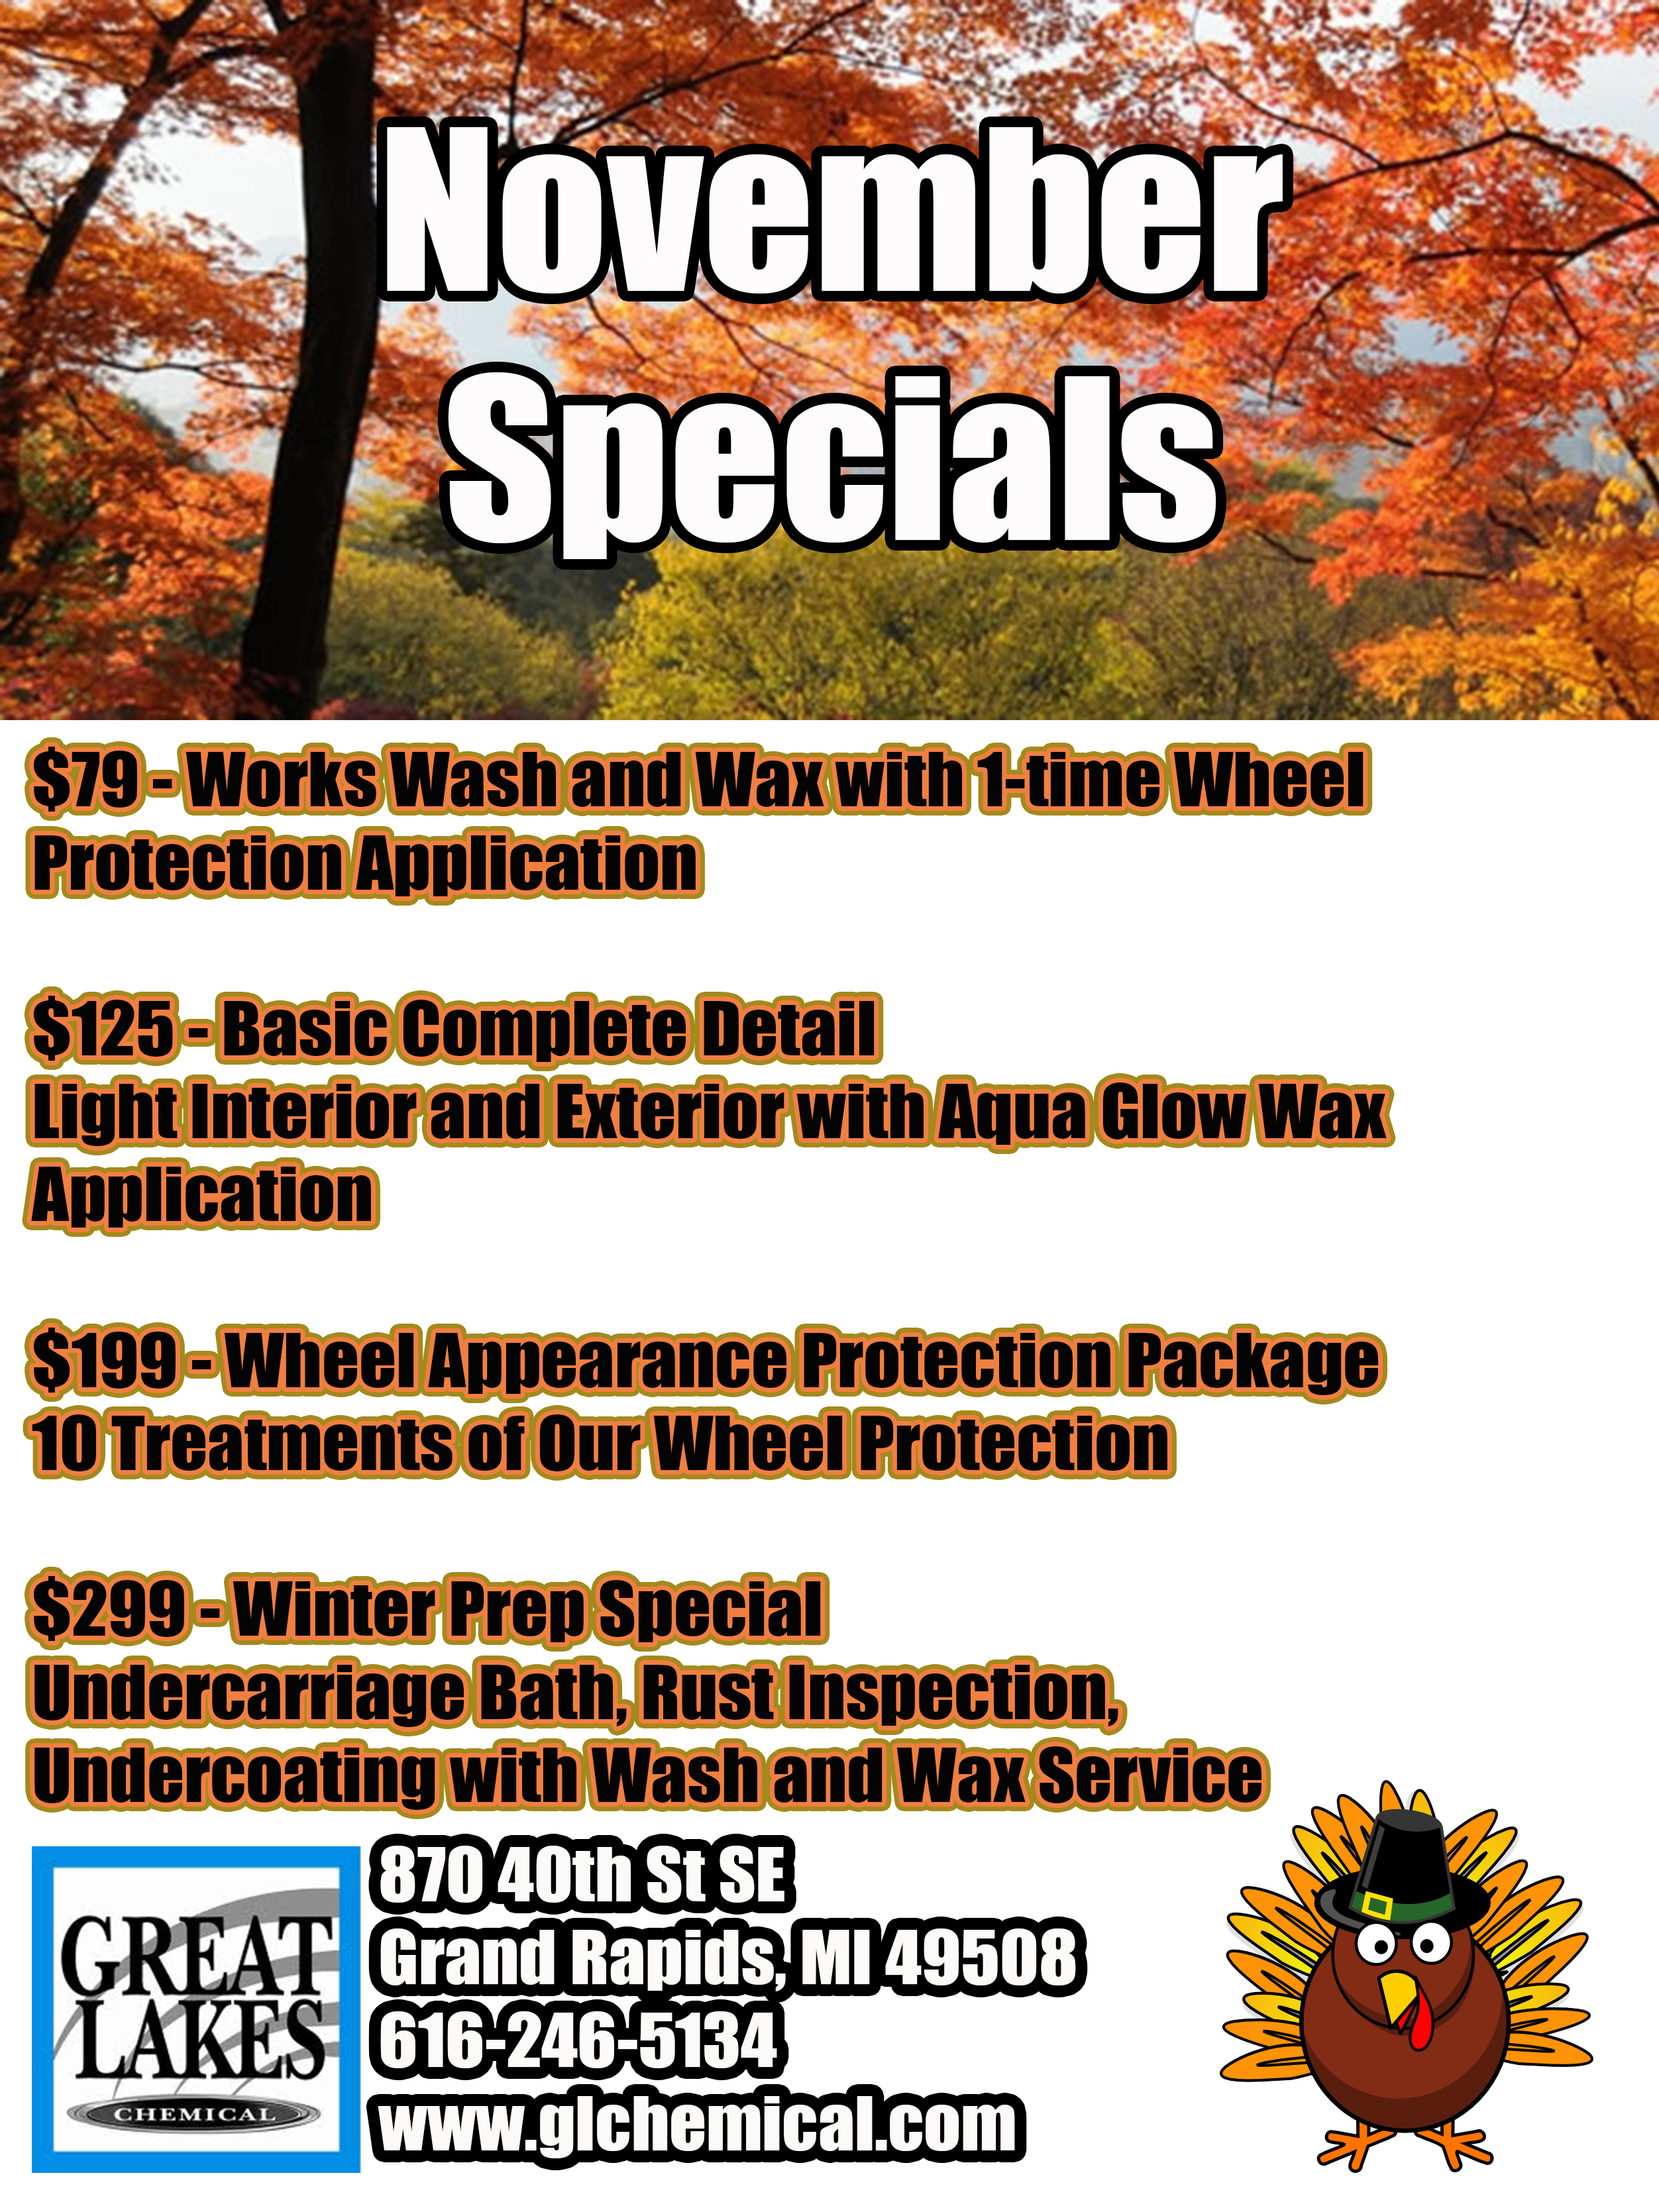 nov15special - Great Lakes Chemical Auto Appearance Specialists ...